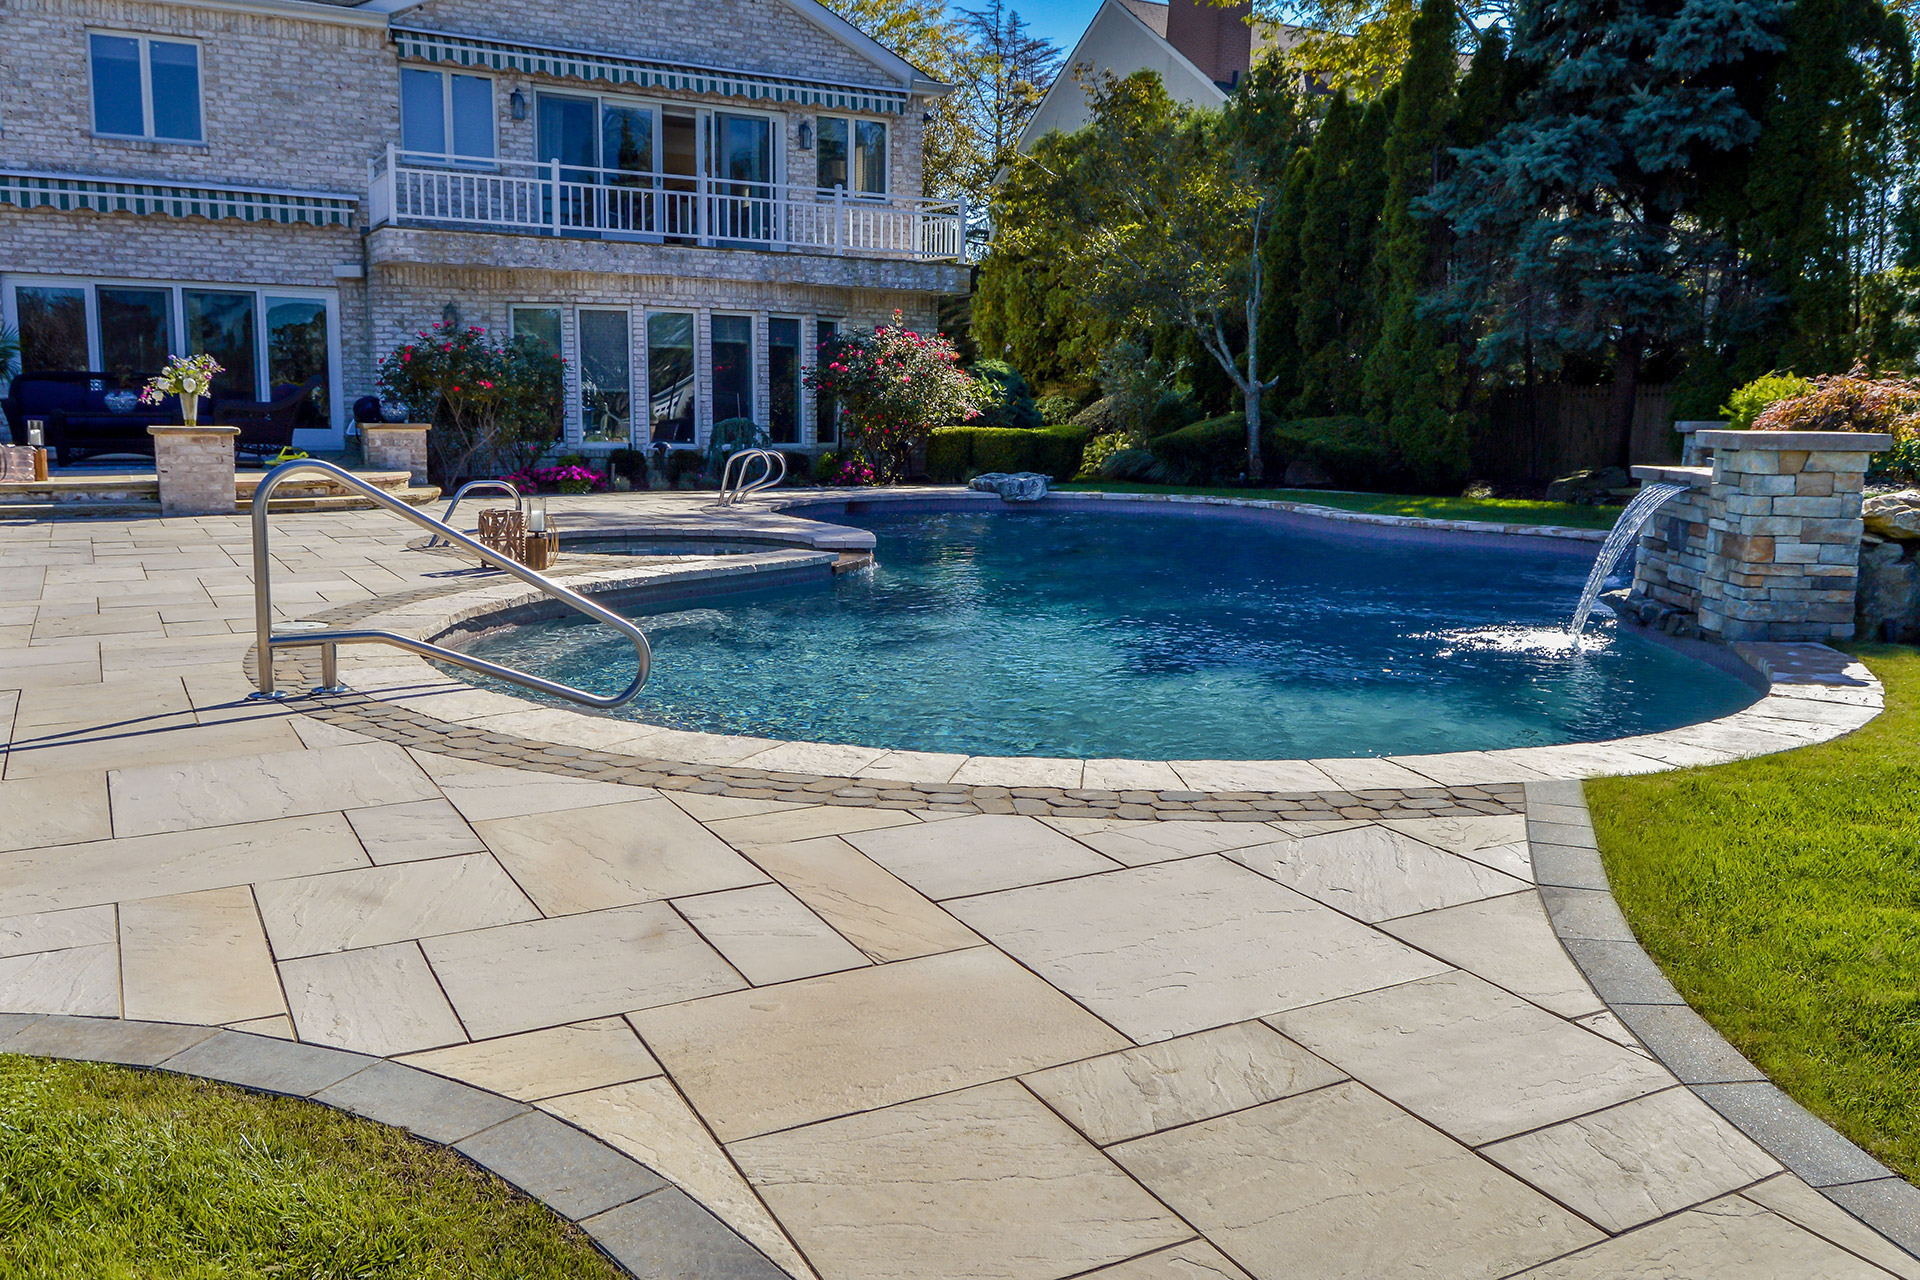 Hicksville, NY top backyard designs with swimming pool and outdoor kitchen